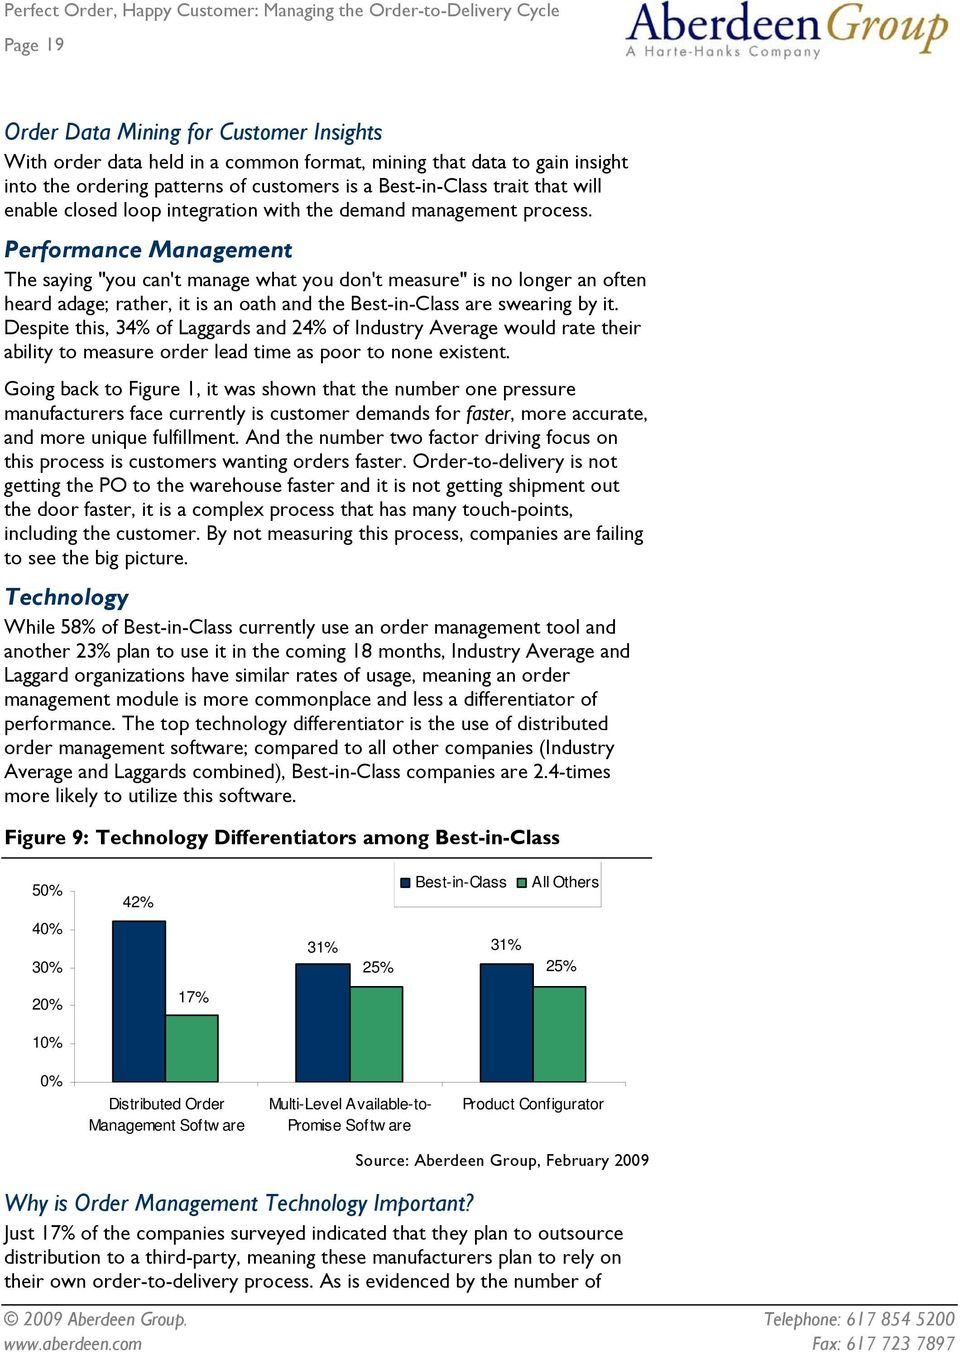 "Performance Management The saying ""you can't manage what you don't measure"" is no longer an often heard adage; rather, it is an oath and the Best-in-Class are swearing by it."